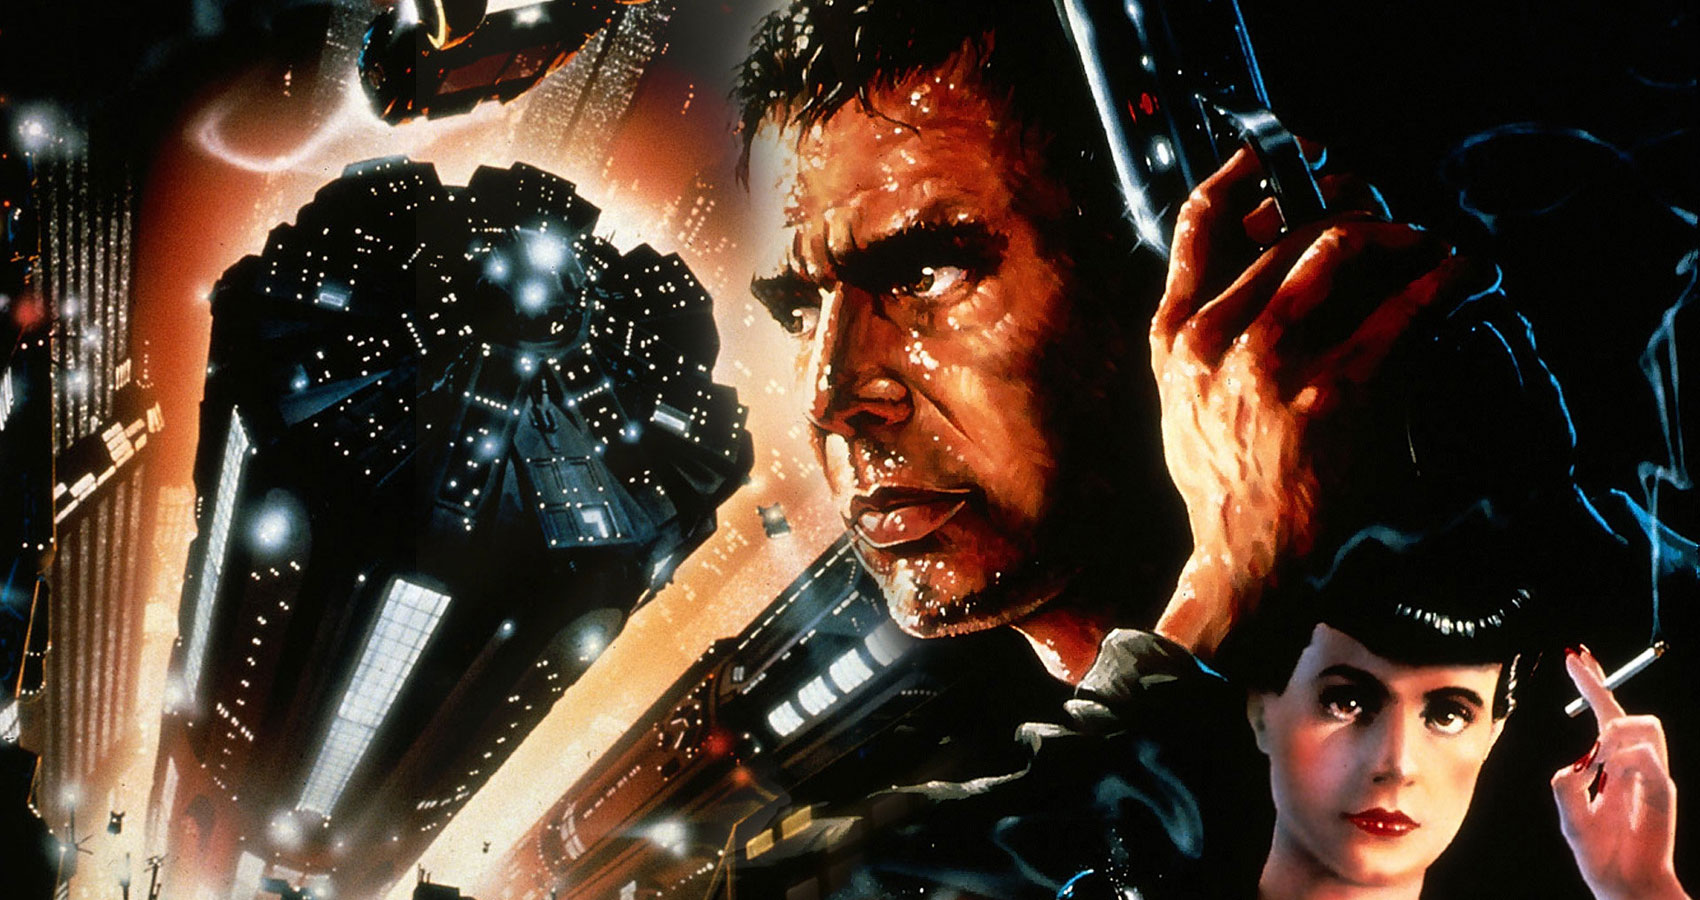 What has The Blade Runner truly taught us? commentary by Sara Szarka at Spillwords.com